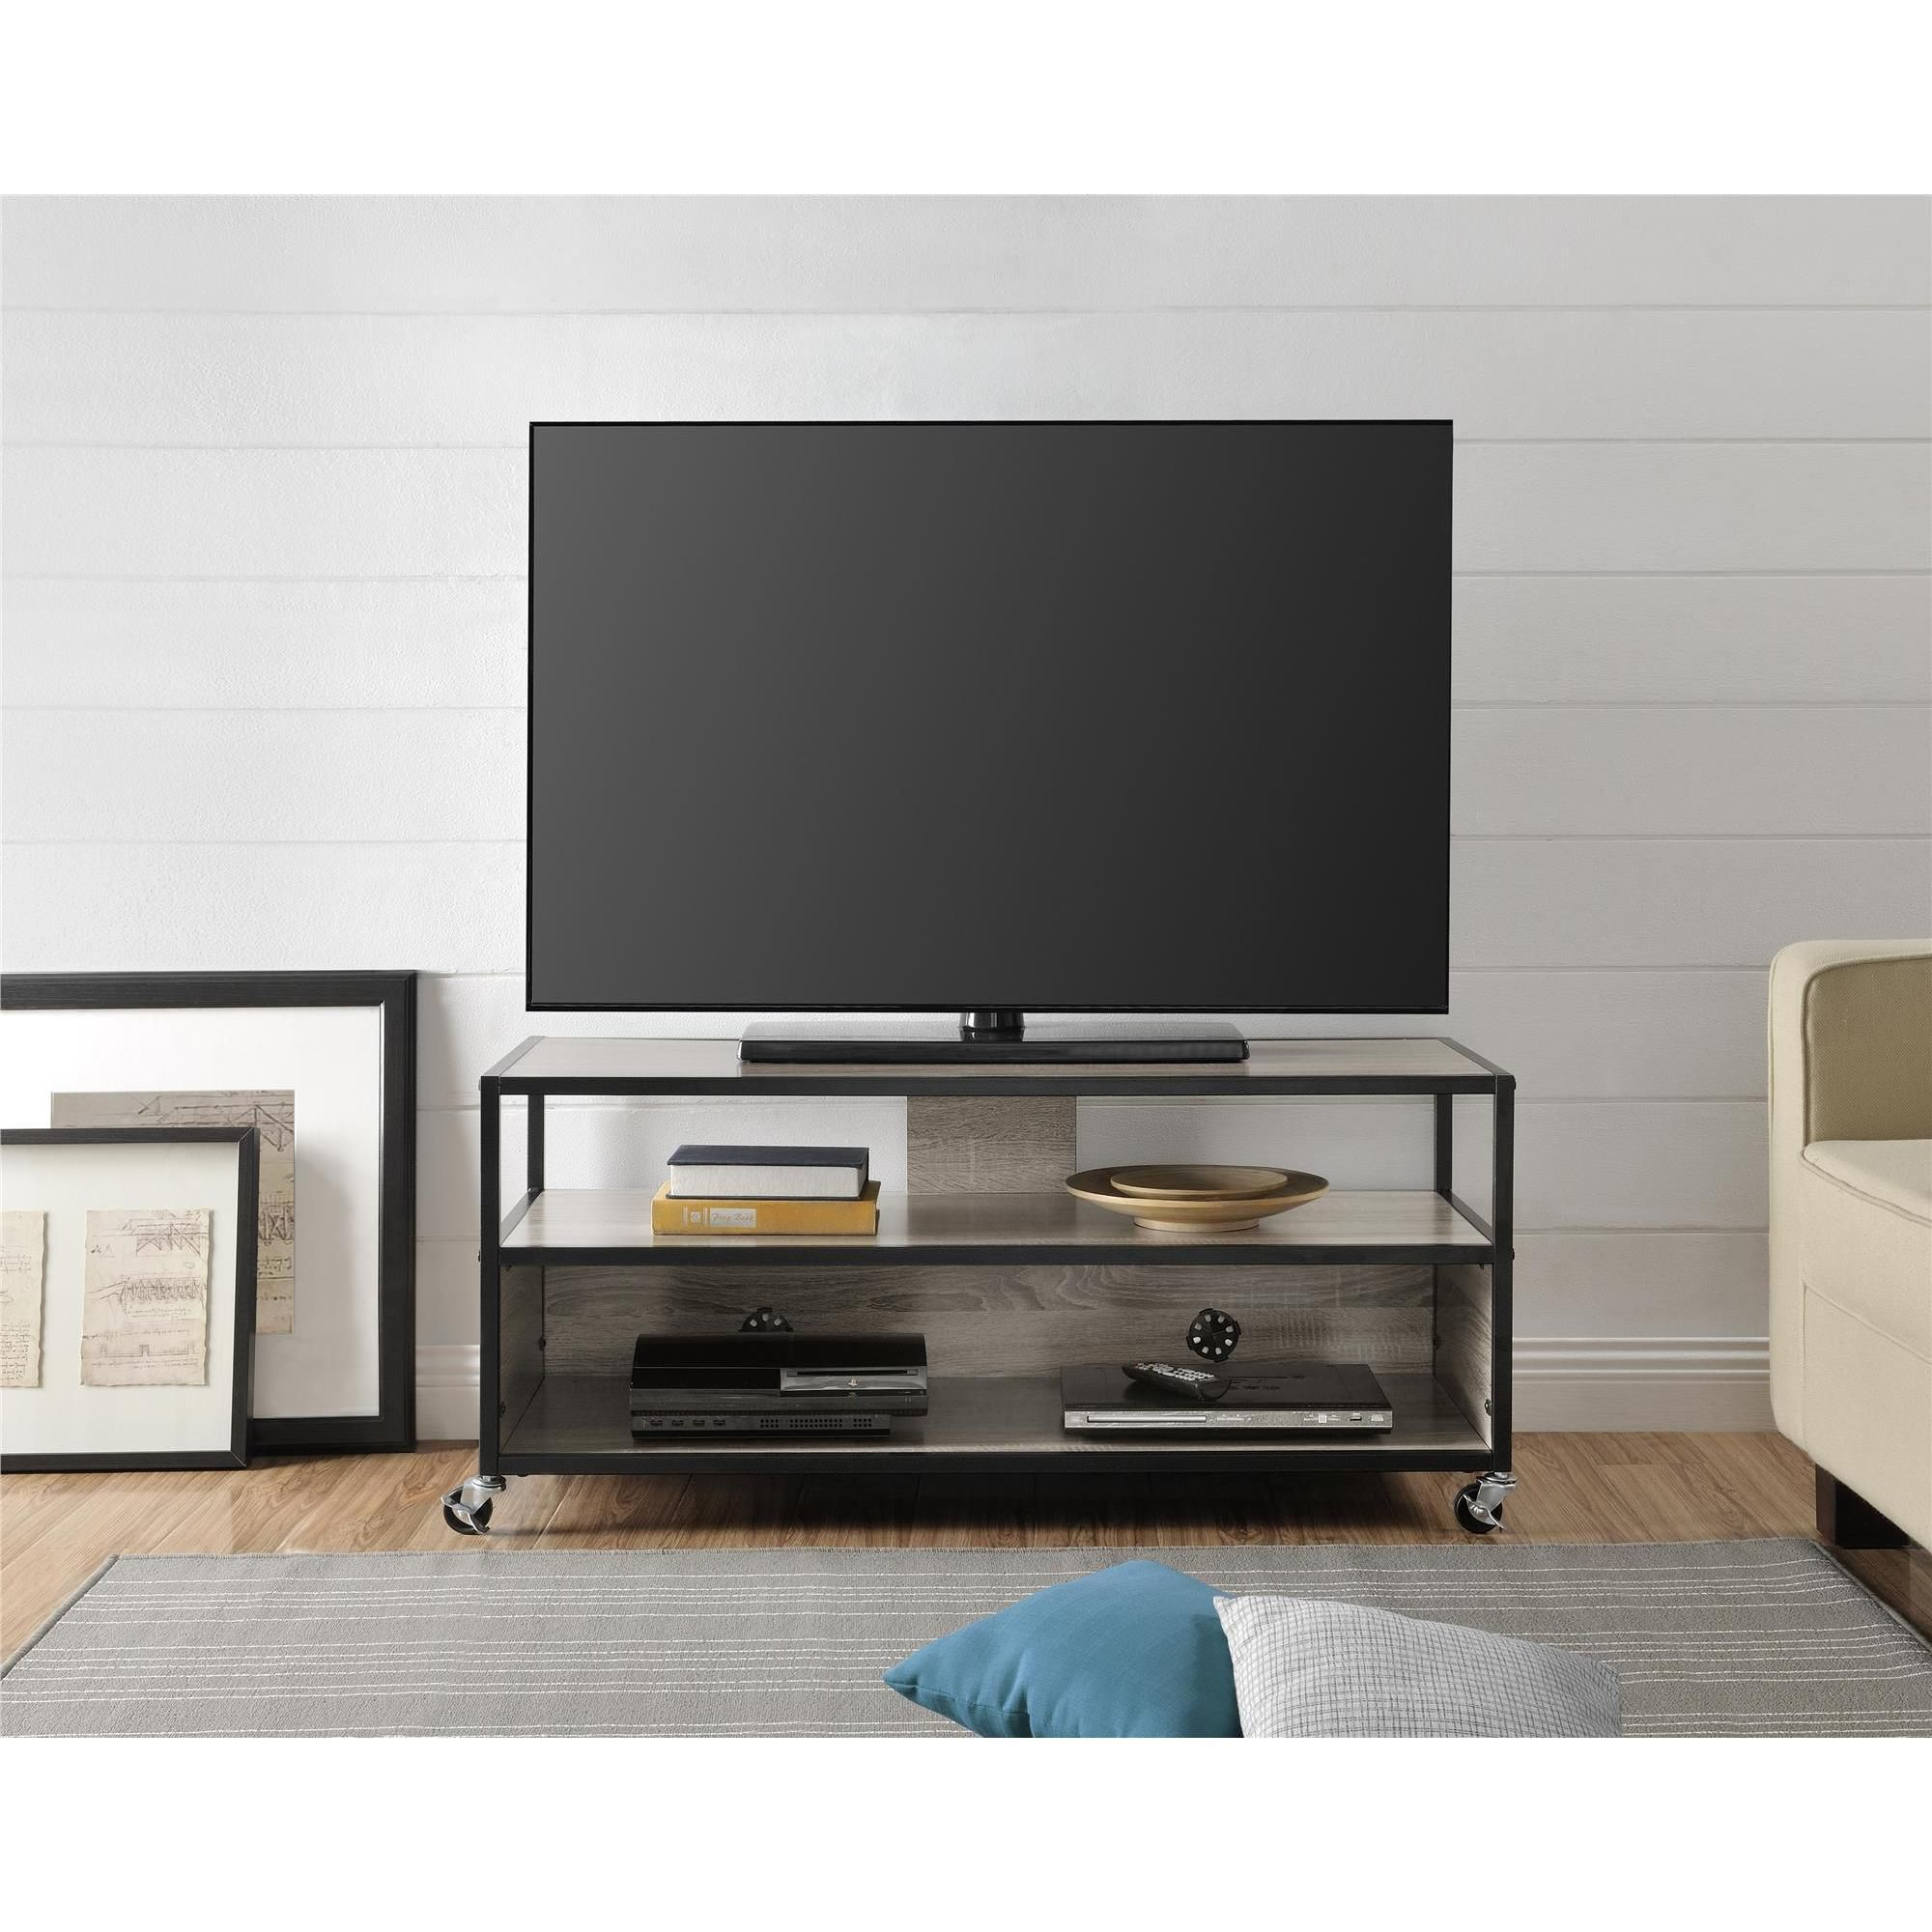 Make Your Home Entertainment System More Mobile With This Smartly Designed  Tv Stand By Altra